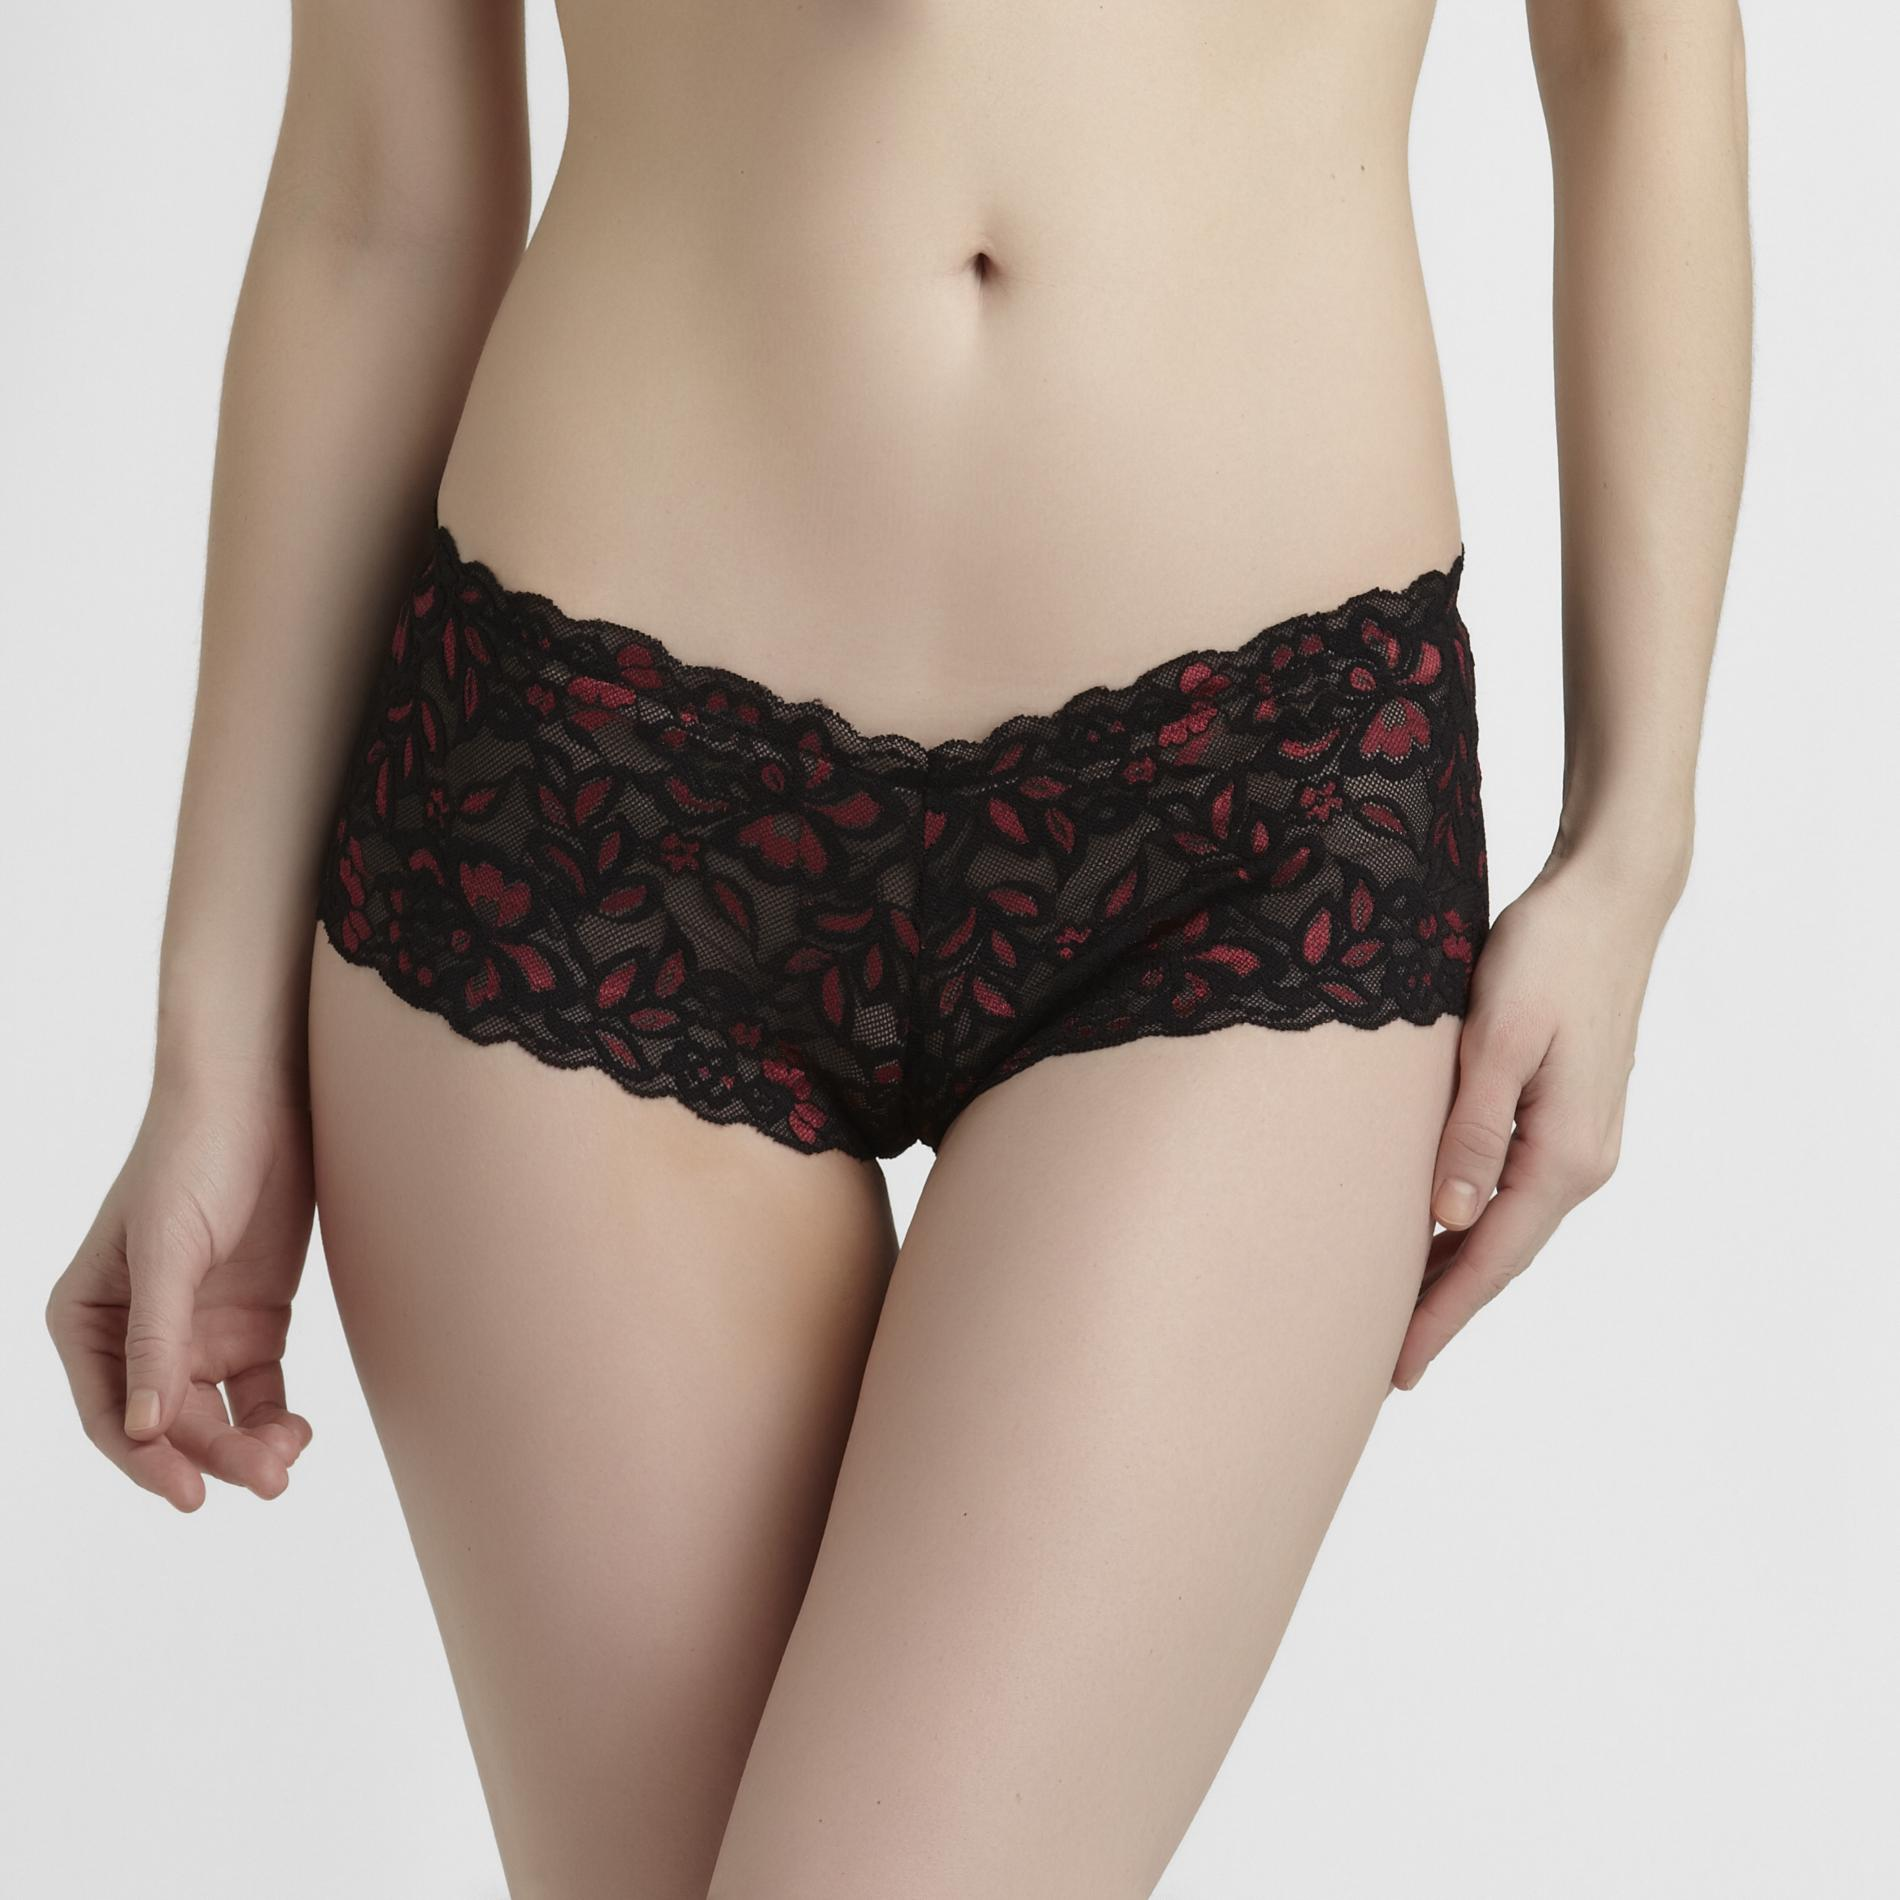 Jaclyn Smith Women's Boy Short Panties at Kmart.com